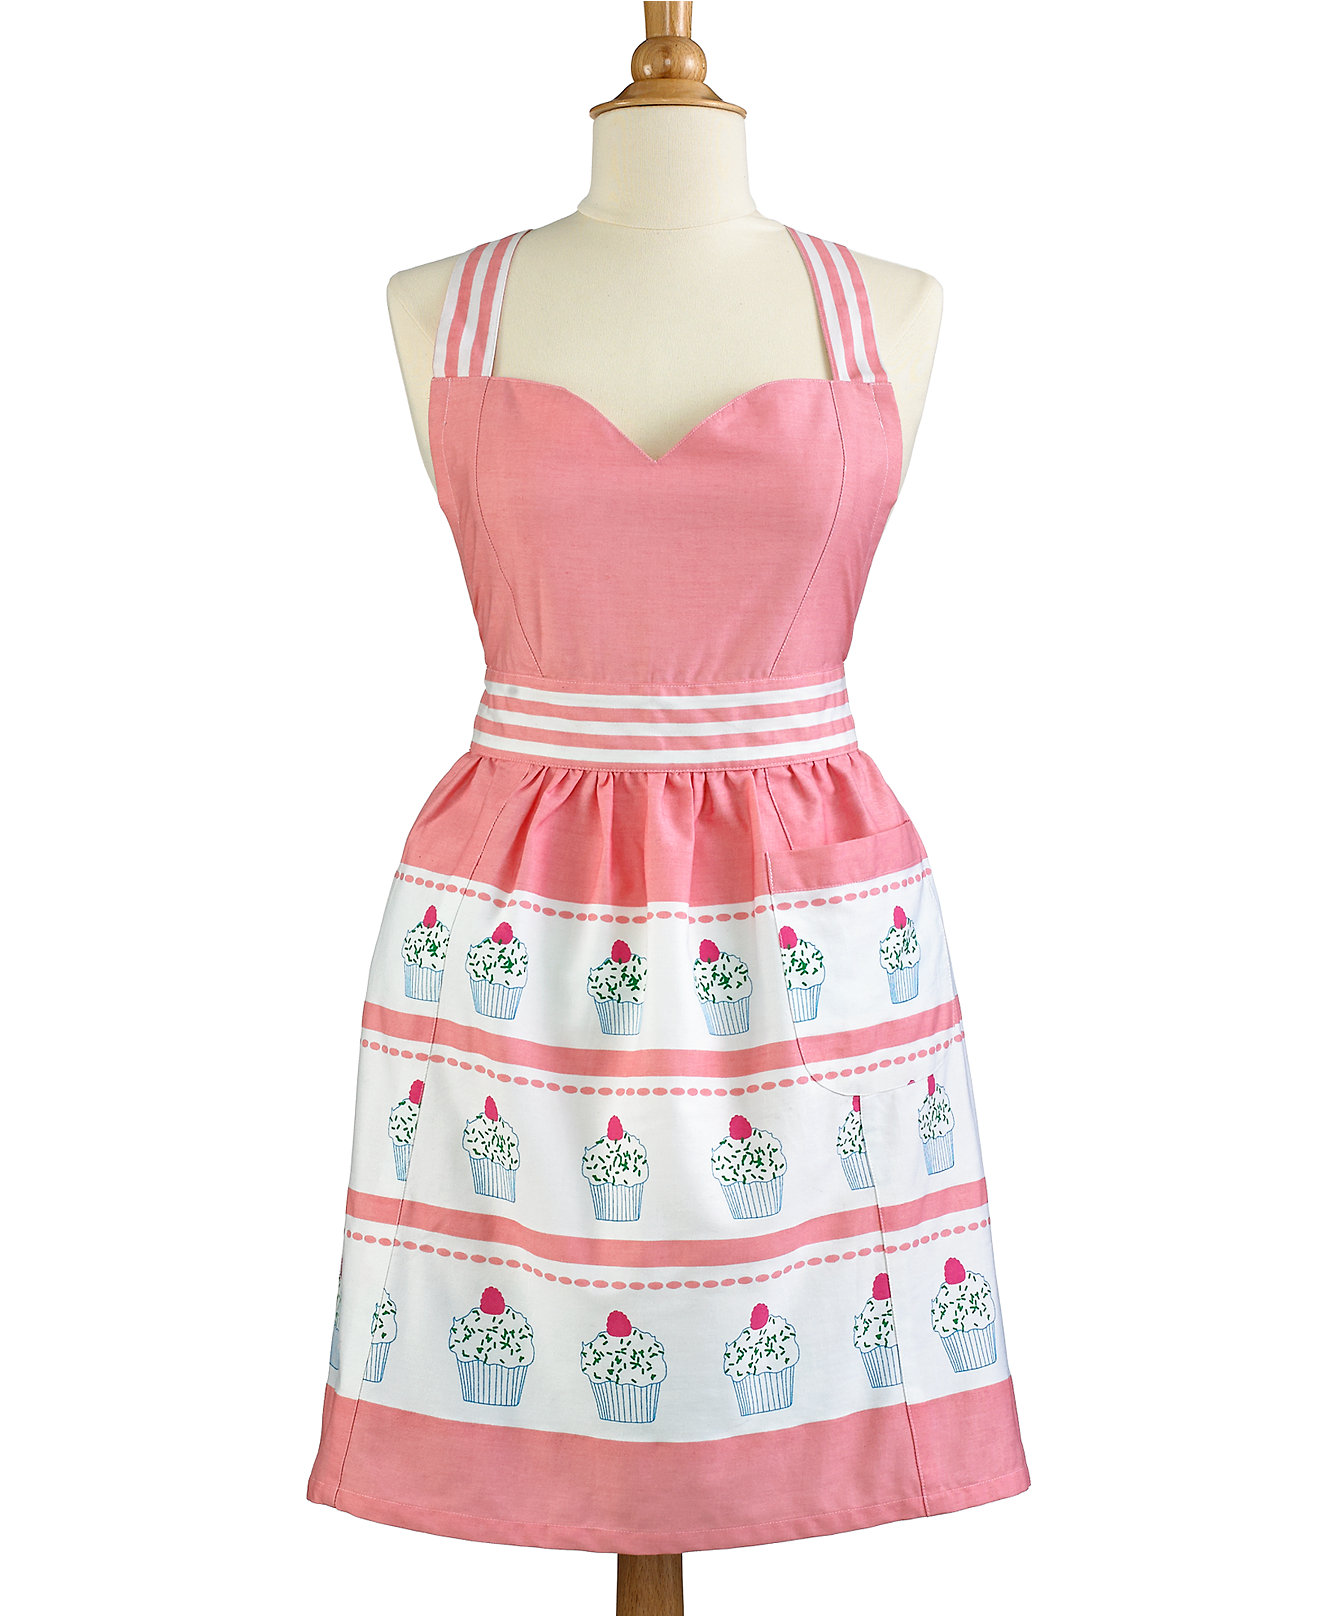 White apron macy's - Martha Stewart Collection Cupcake Apron Only At Macy S Kitchen Gadgets Kitchen Macy S Bridal And Wedding Registry